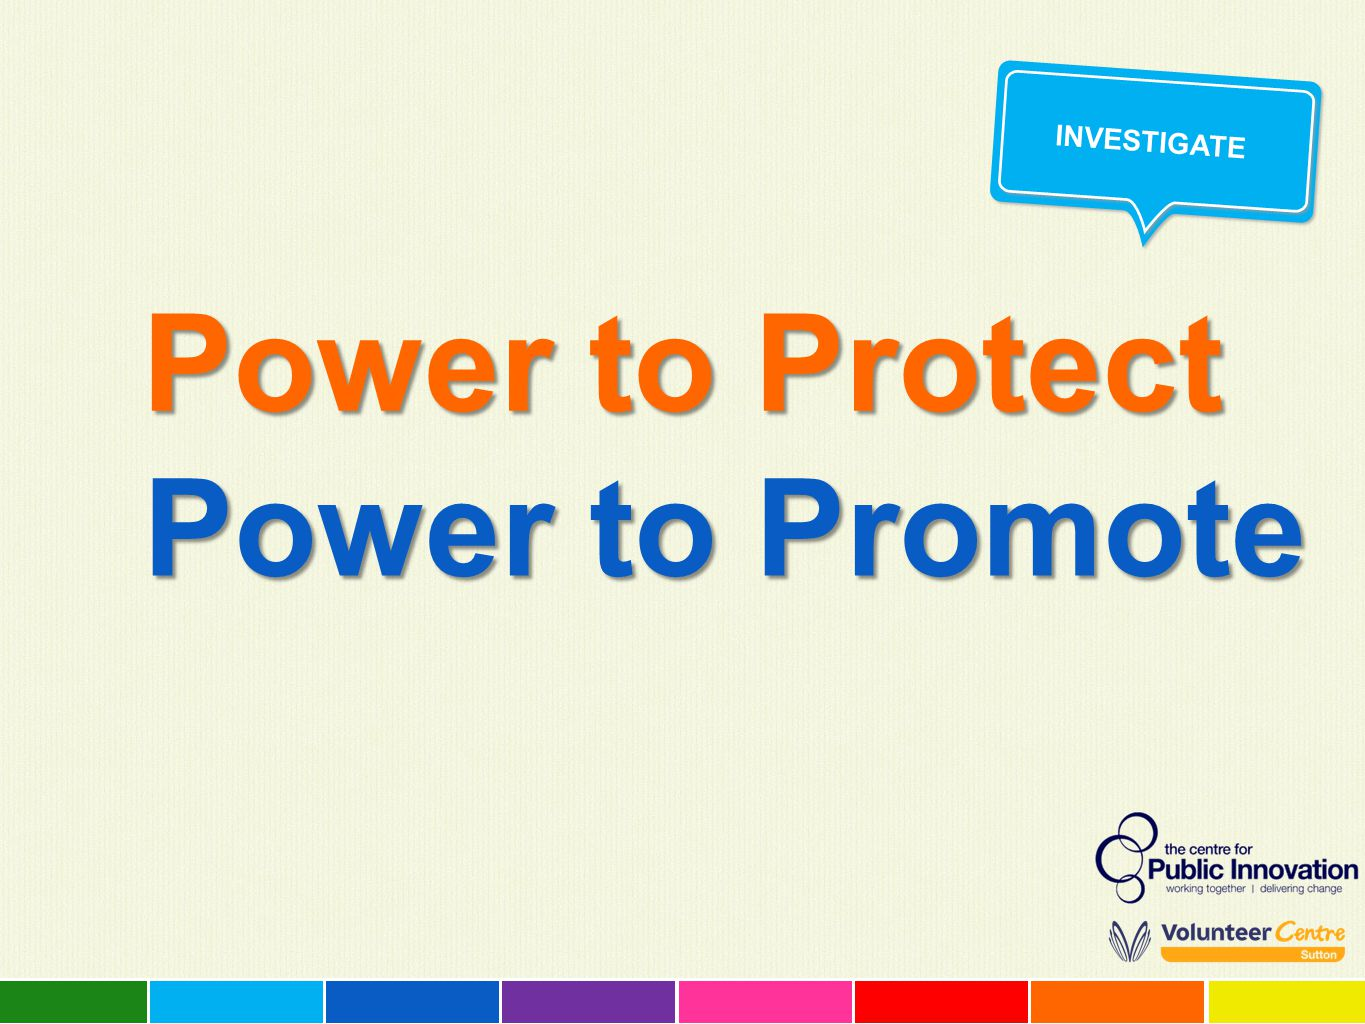 Power to Protect Power to Promote